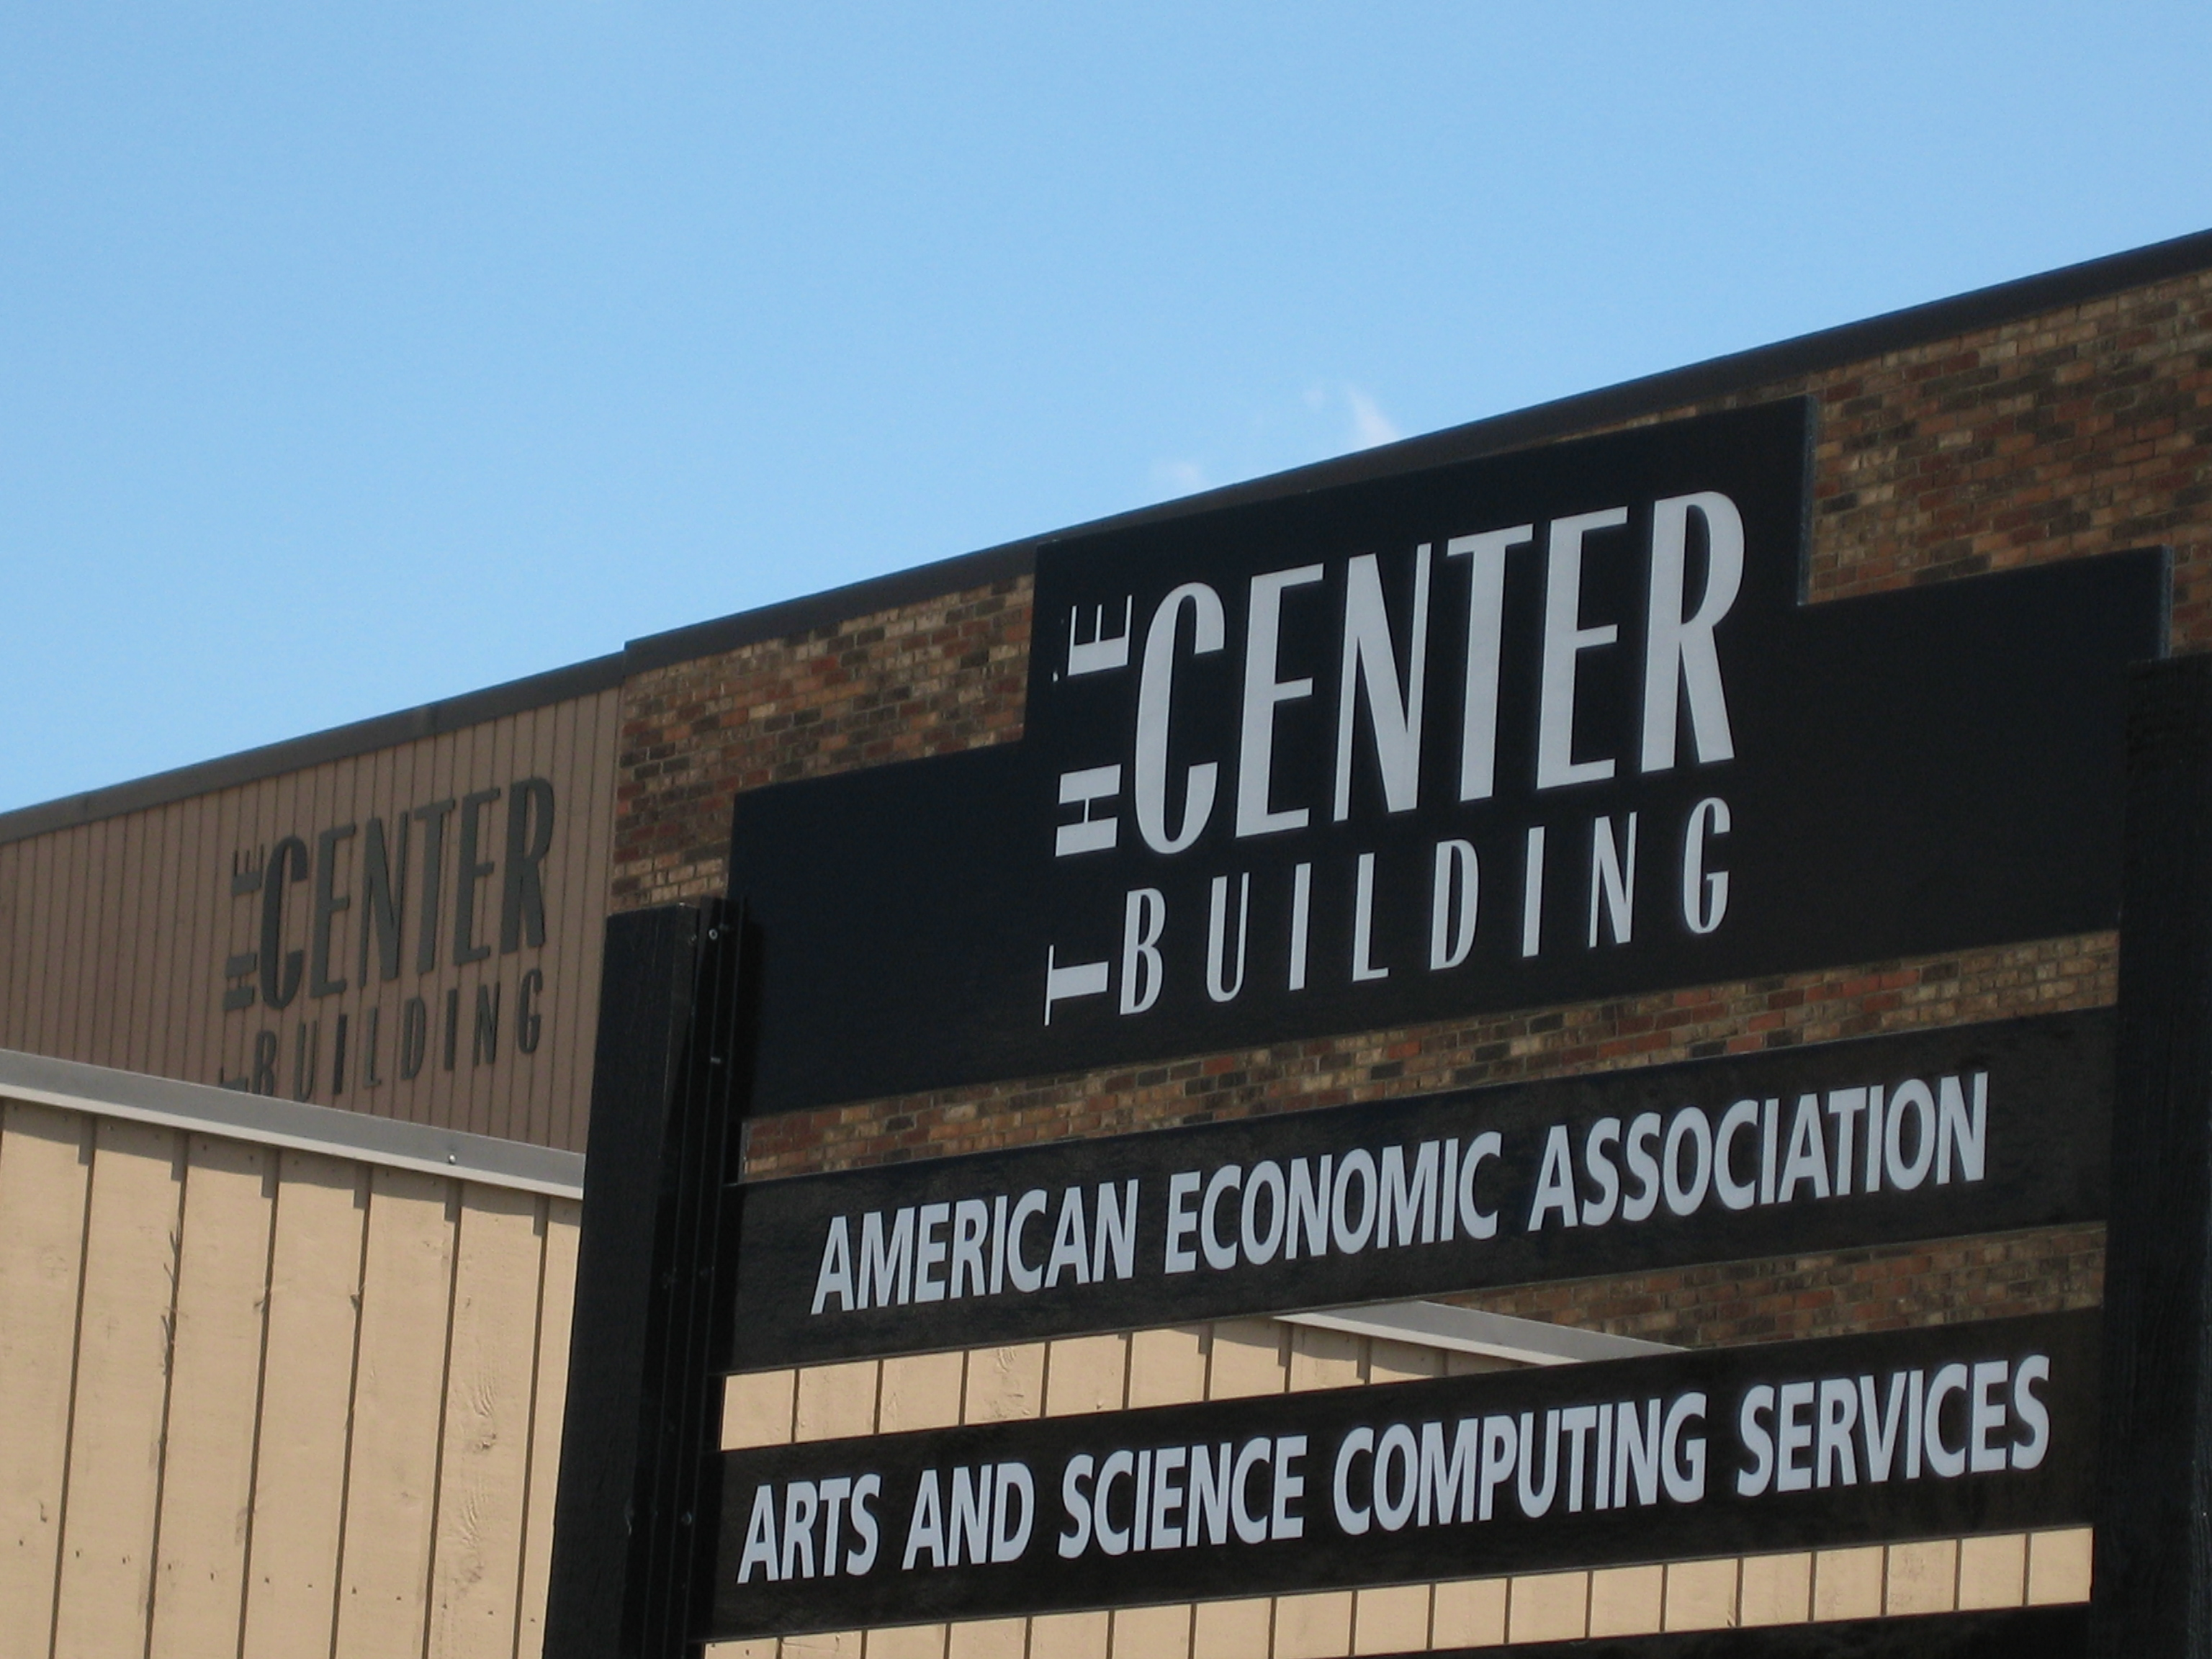 Center Building Sign and Building